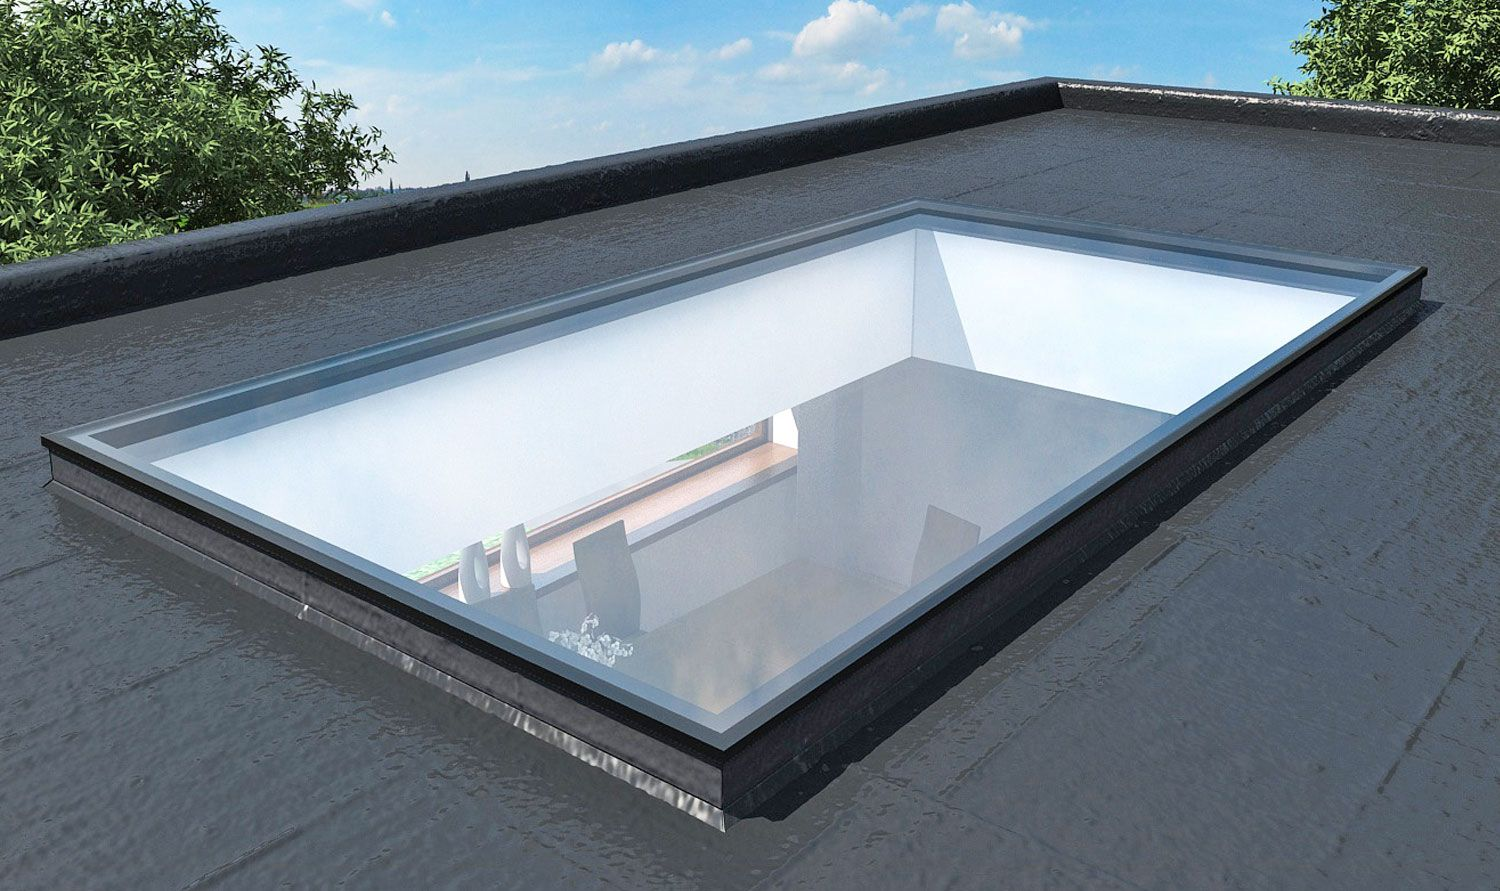 Find This Pin And More On Glass Roof, Roof Lantern By Polisbydgoszcz. Fixed  Flat Rooflights, Skylights ...